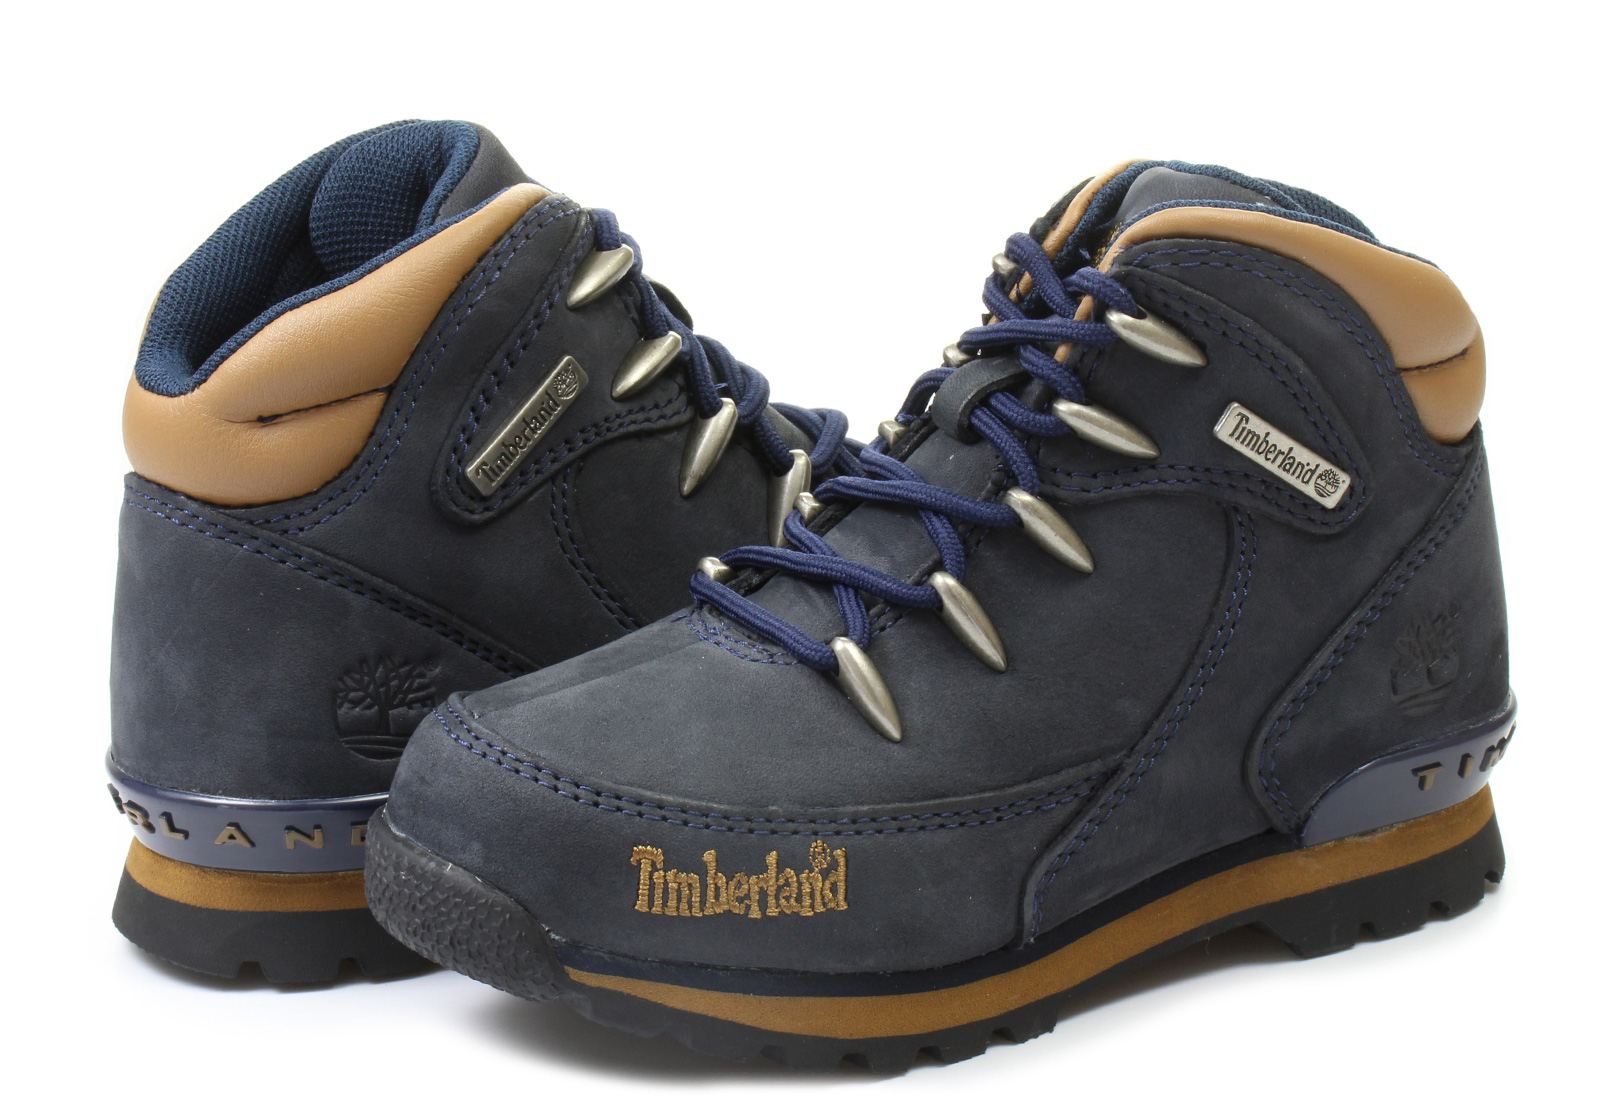 Timberland Bakancs - Euro Rock Hiker - 3082R-NVY - Office Shoes ... 62636d4033